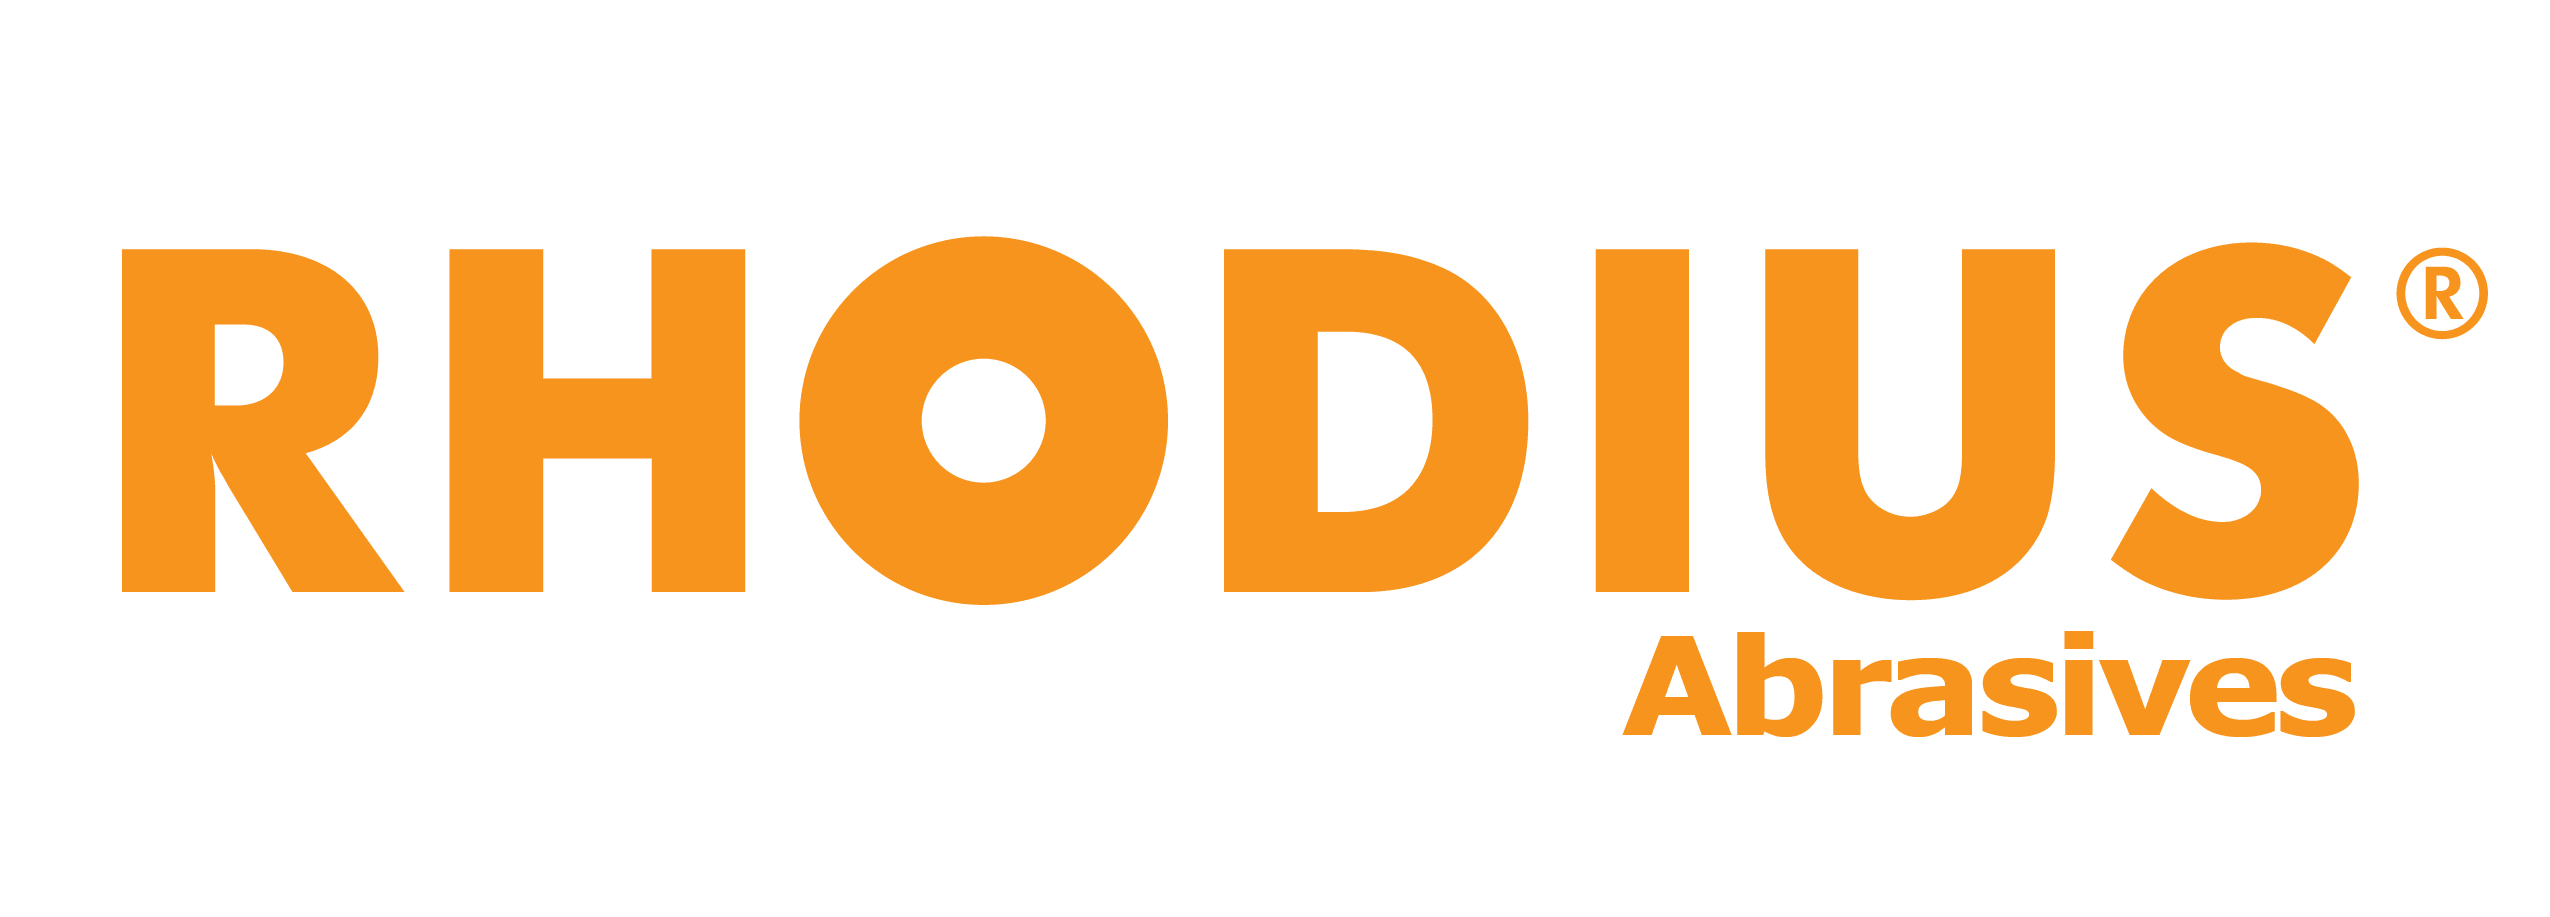 Rhodius-Logo orange-01